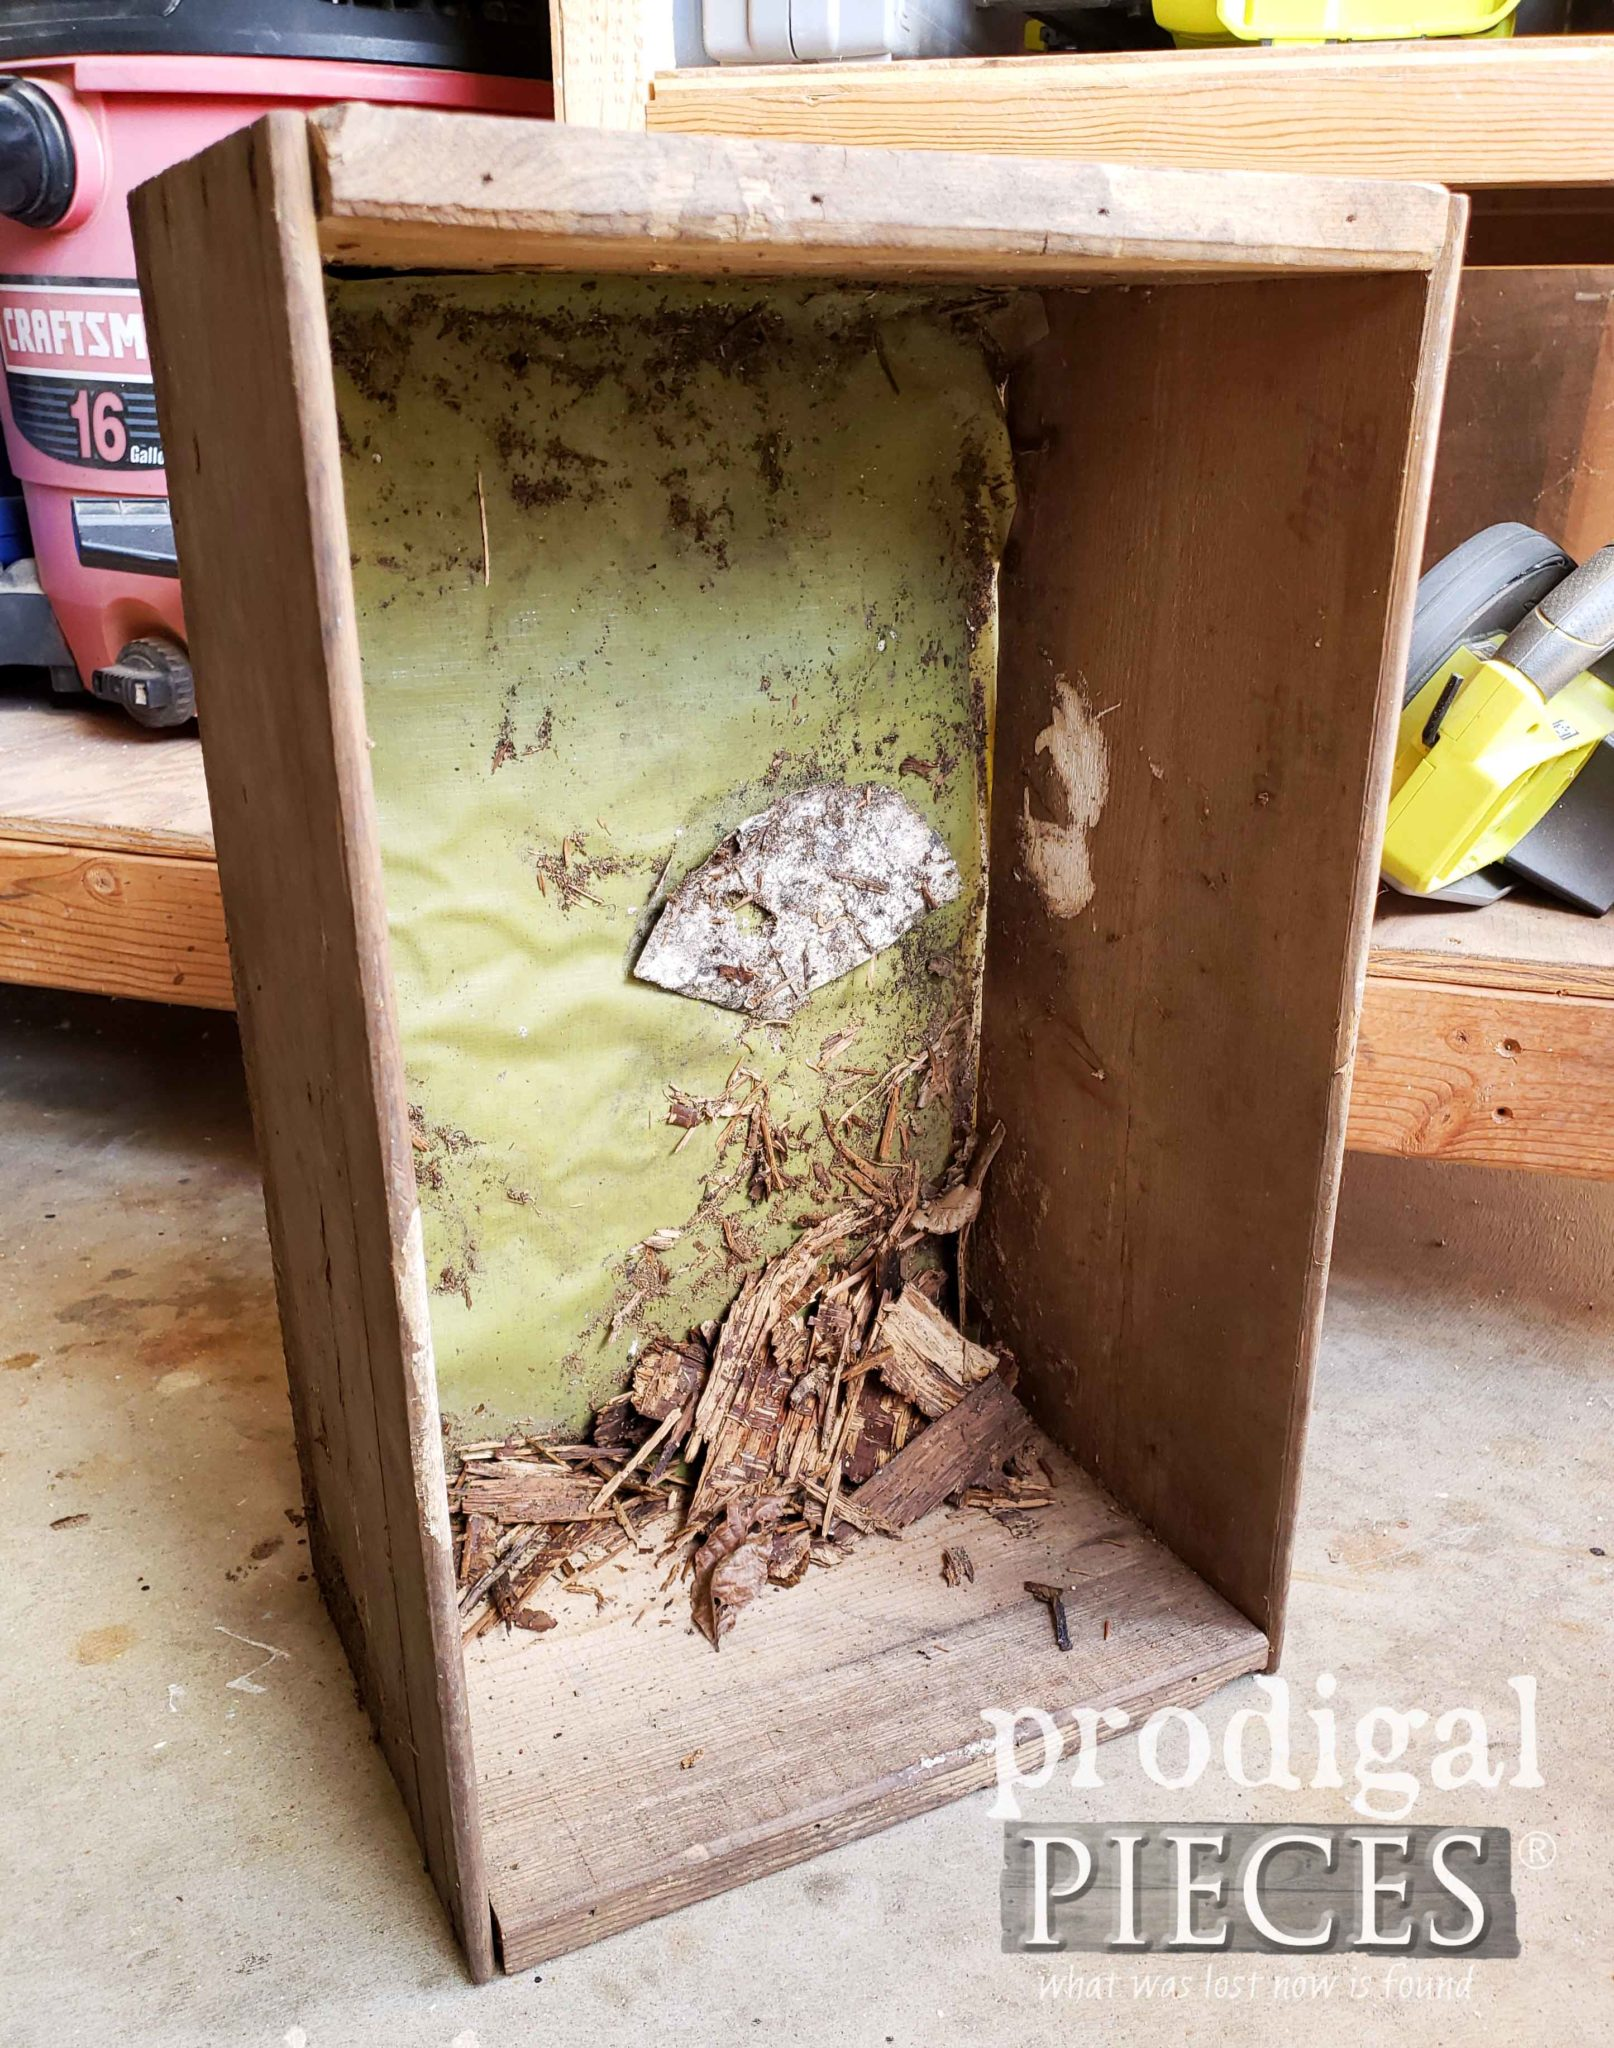 Inside Damaged Wooden Crate | prodigalpieces.com